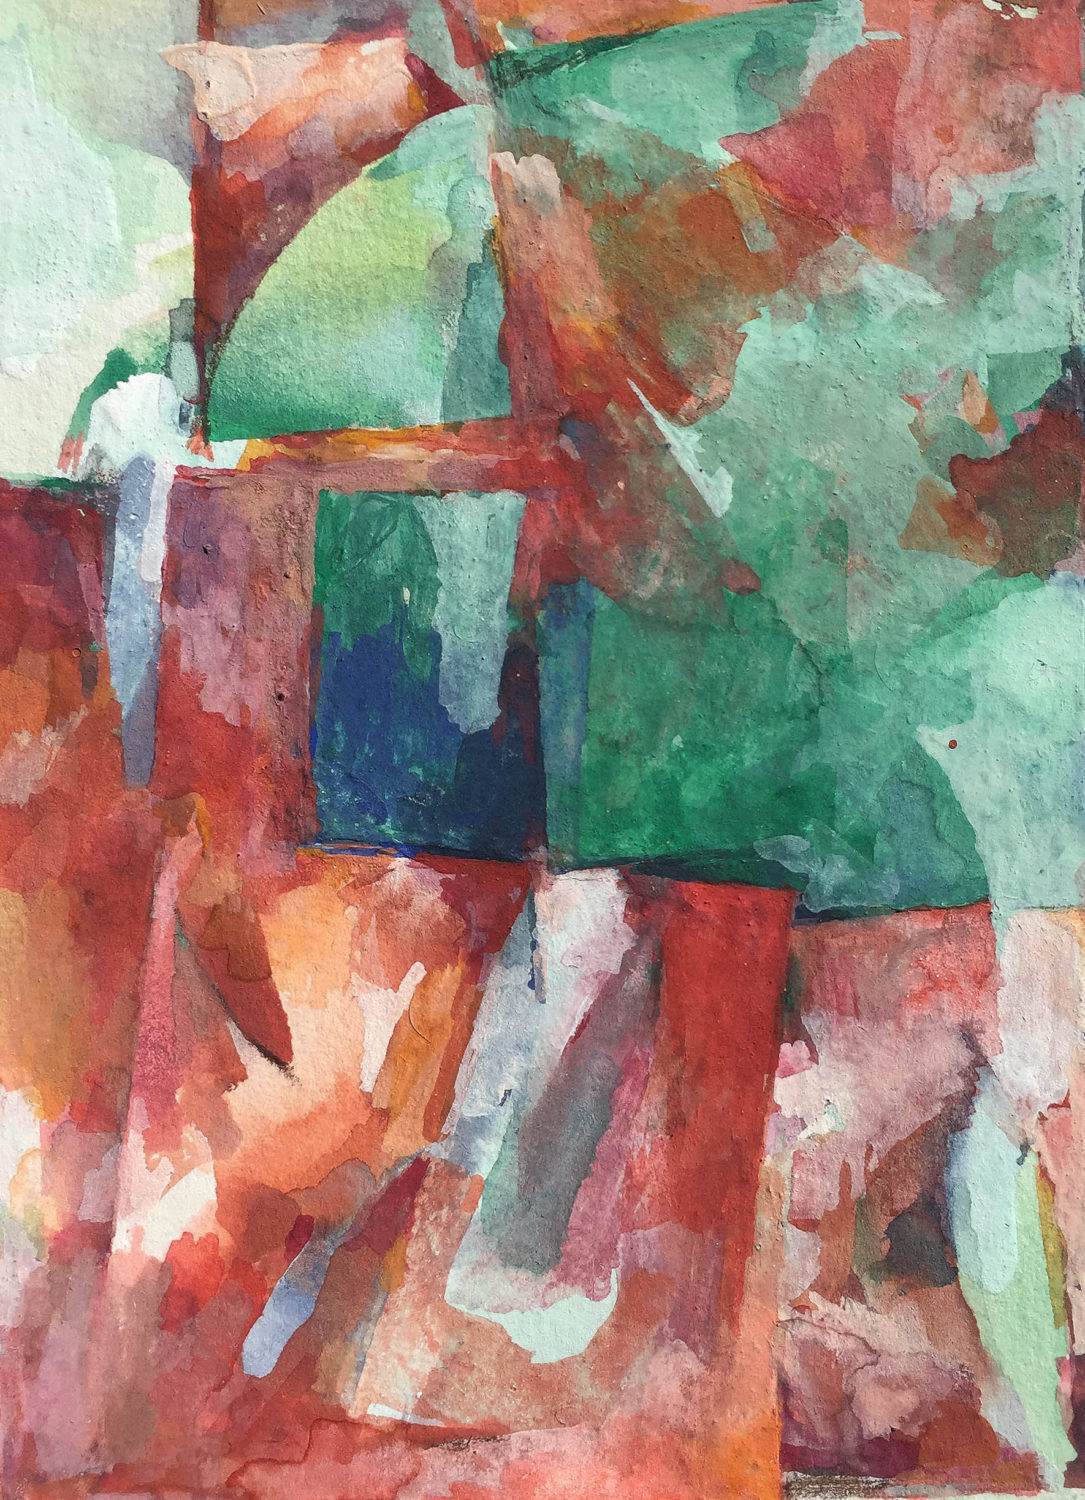 Abstract small scale paintings